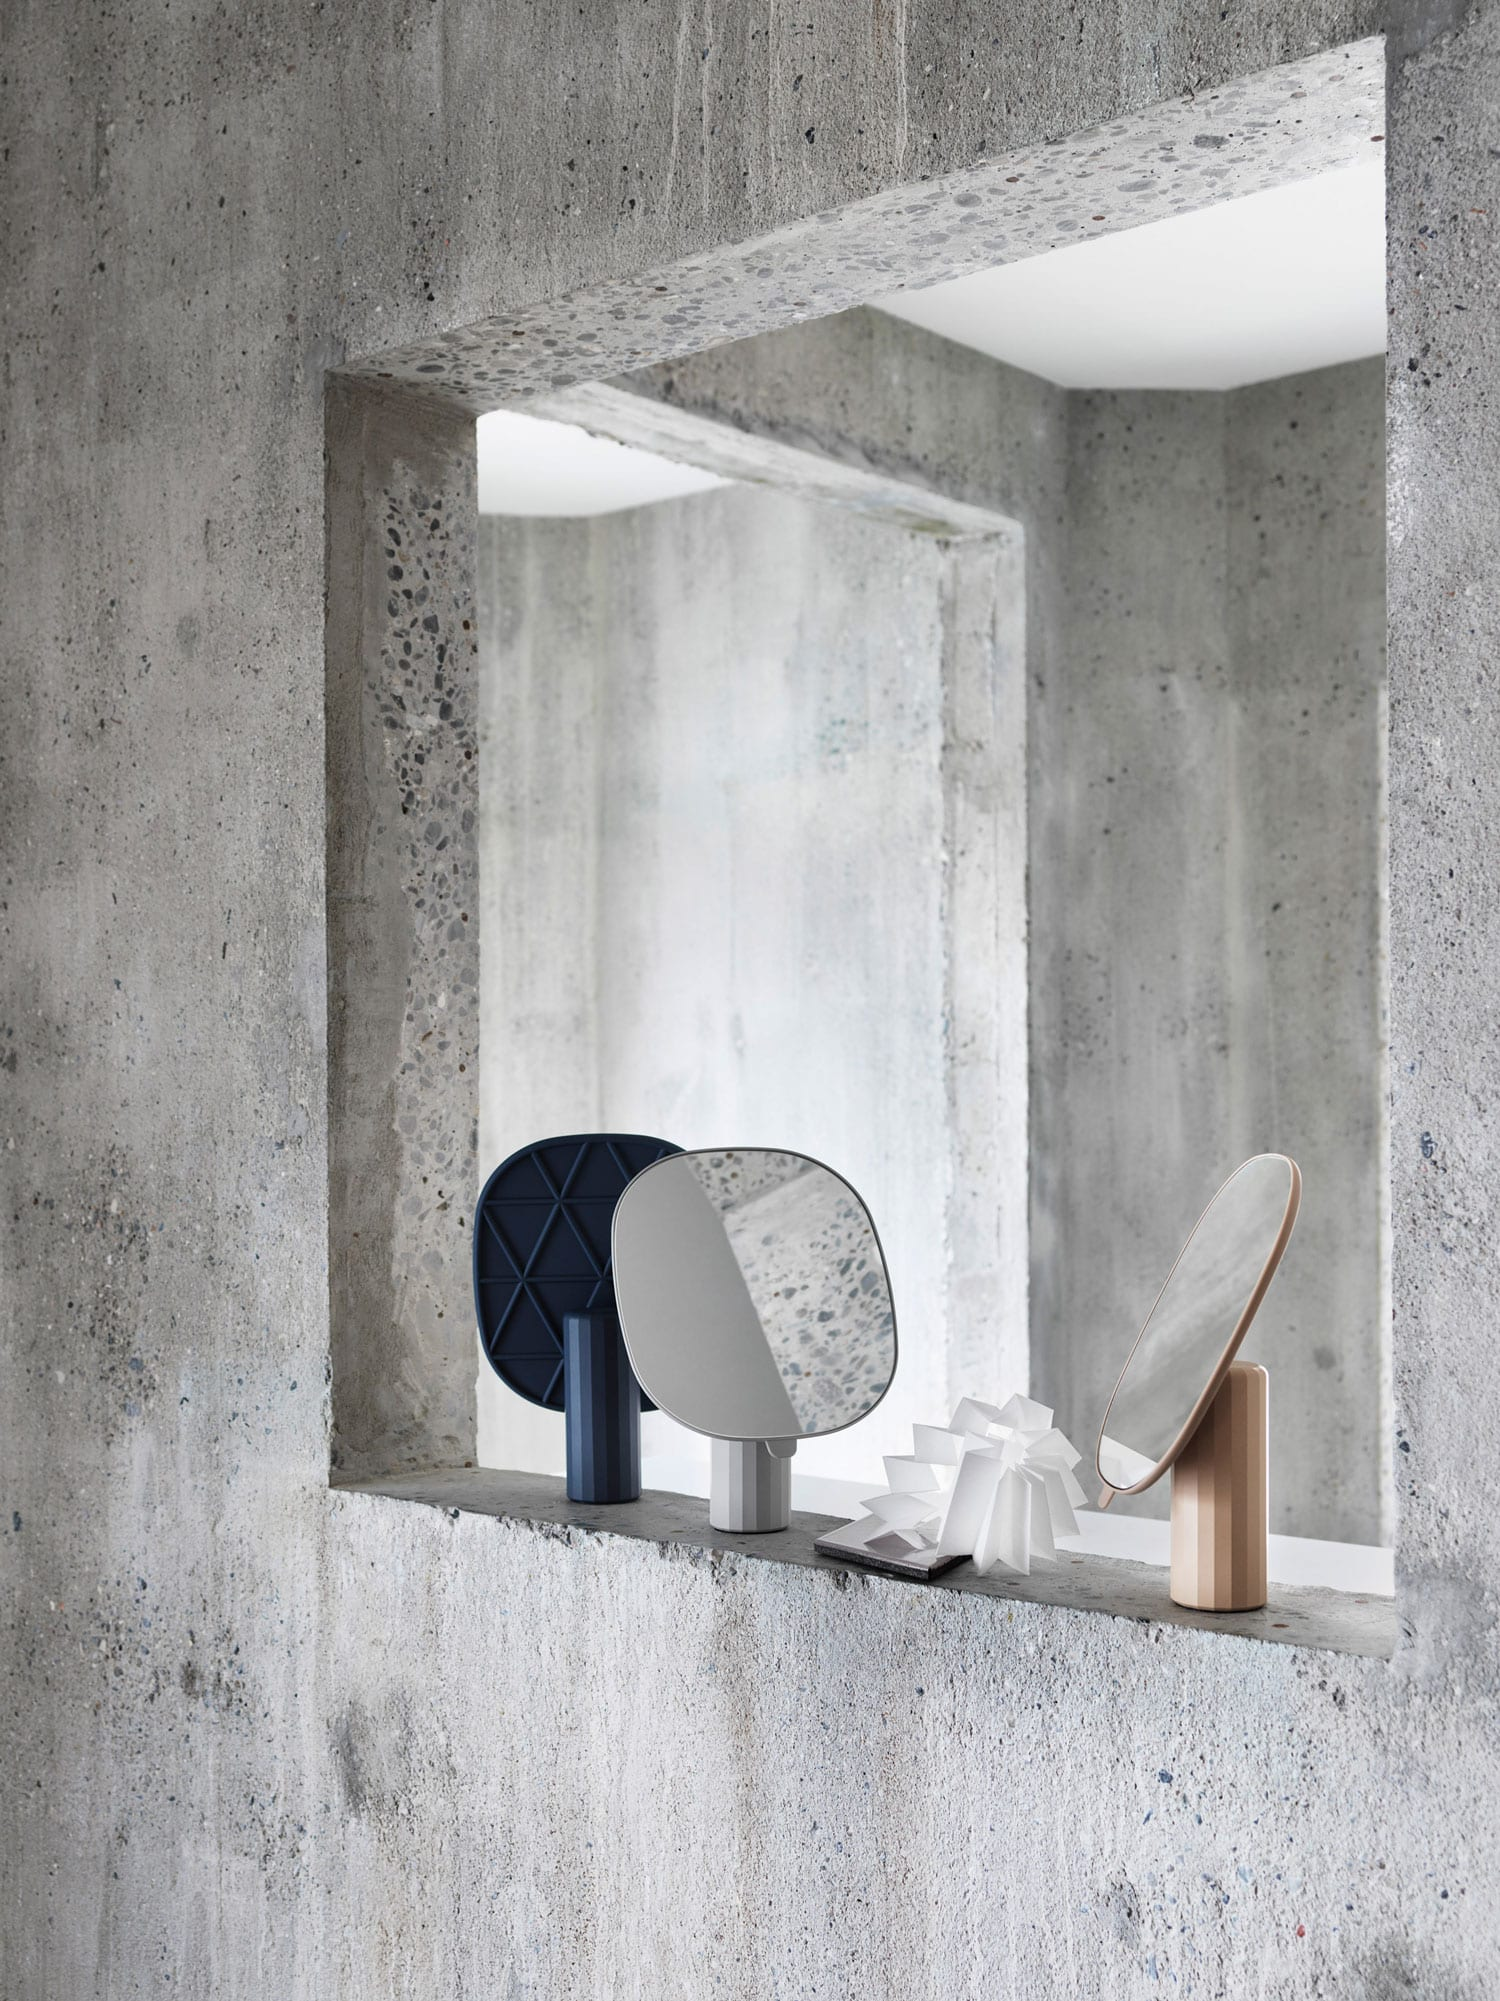 Mimic Mirror by Normal Studio for Muuto at IMM Cologne 2018 | Yellowtrace